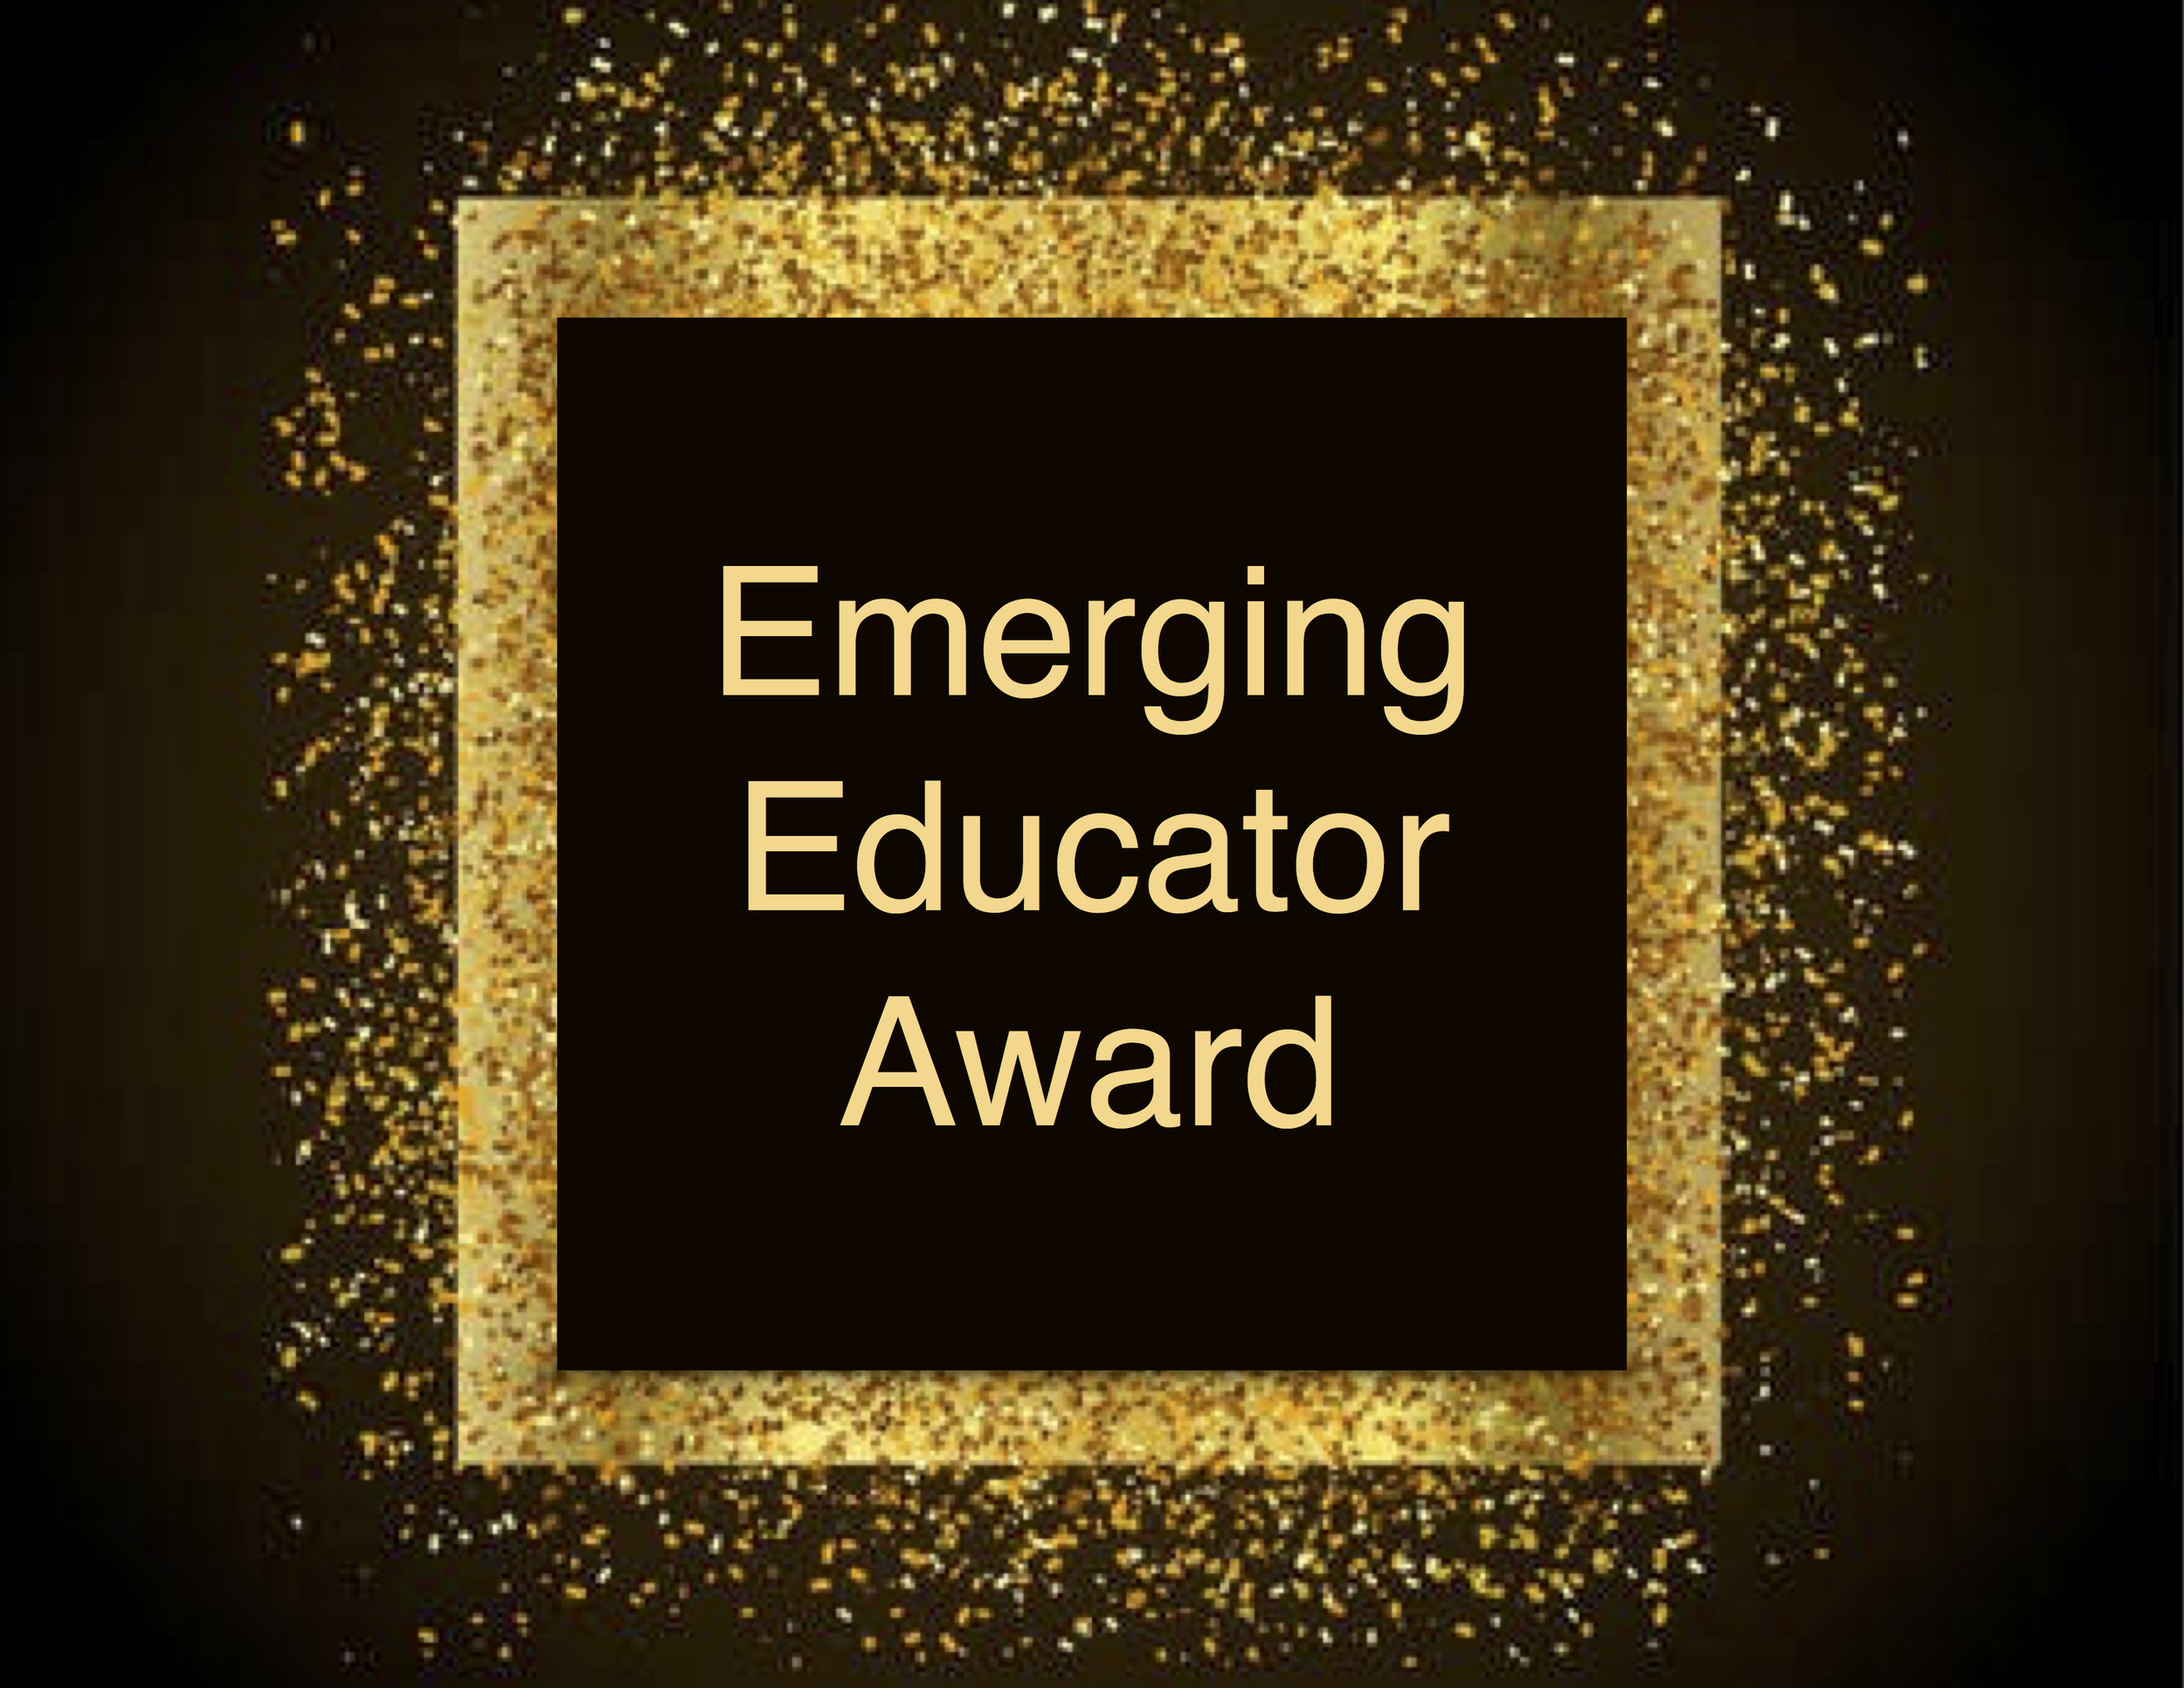 Emerging Educator Award.jpg